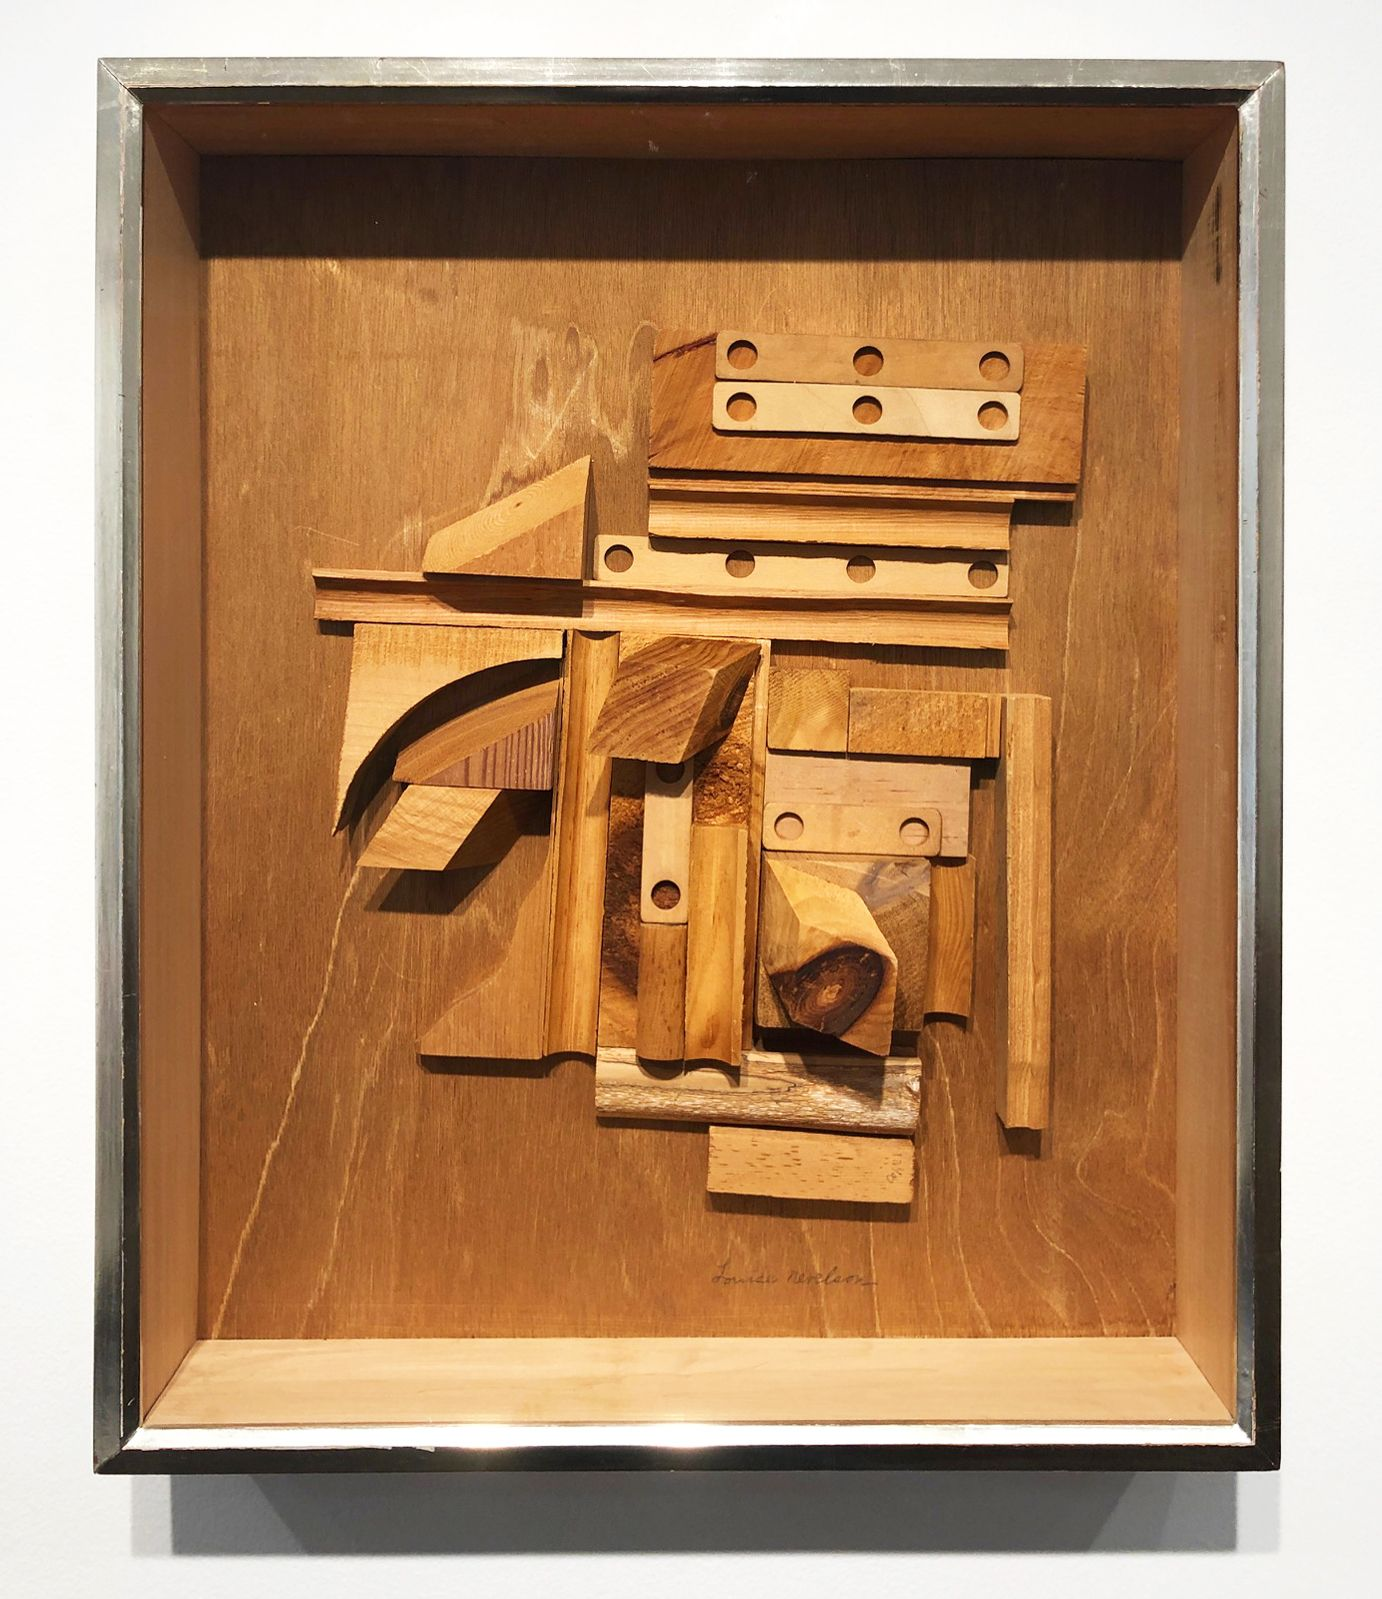 Louise Nevelson, Series of Unknown Cosmos XXXIX, 1965